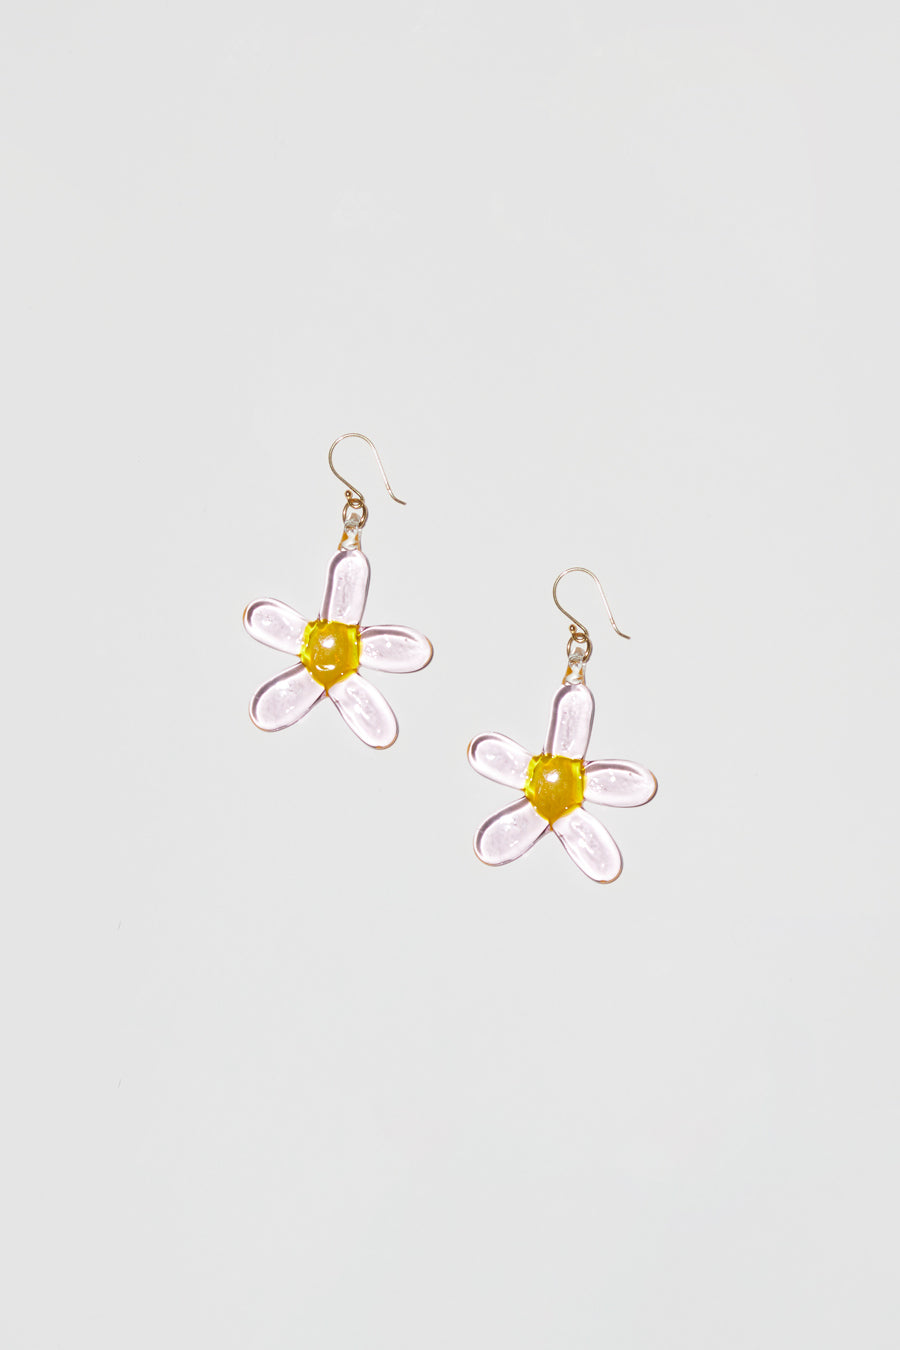 Ninfa Daisy Hook Earrings in Pink